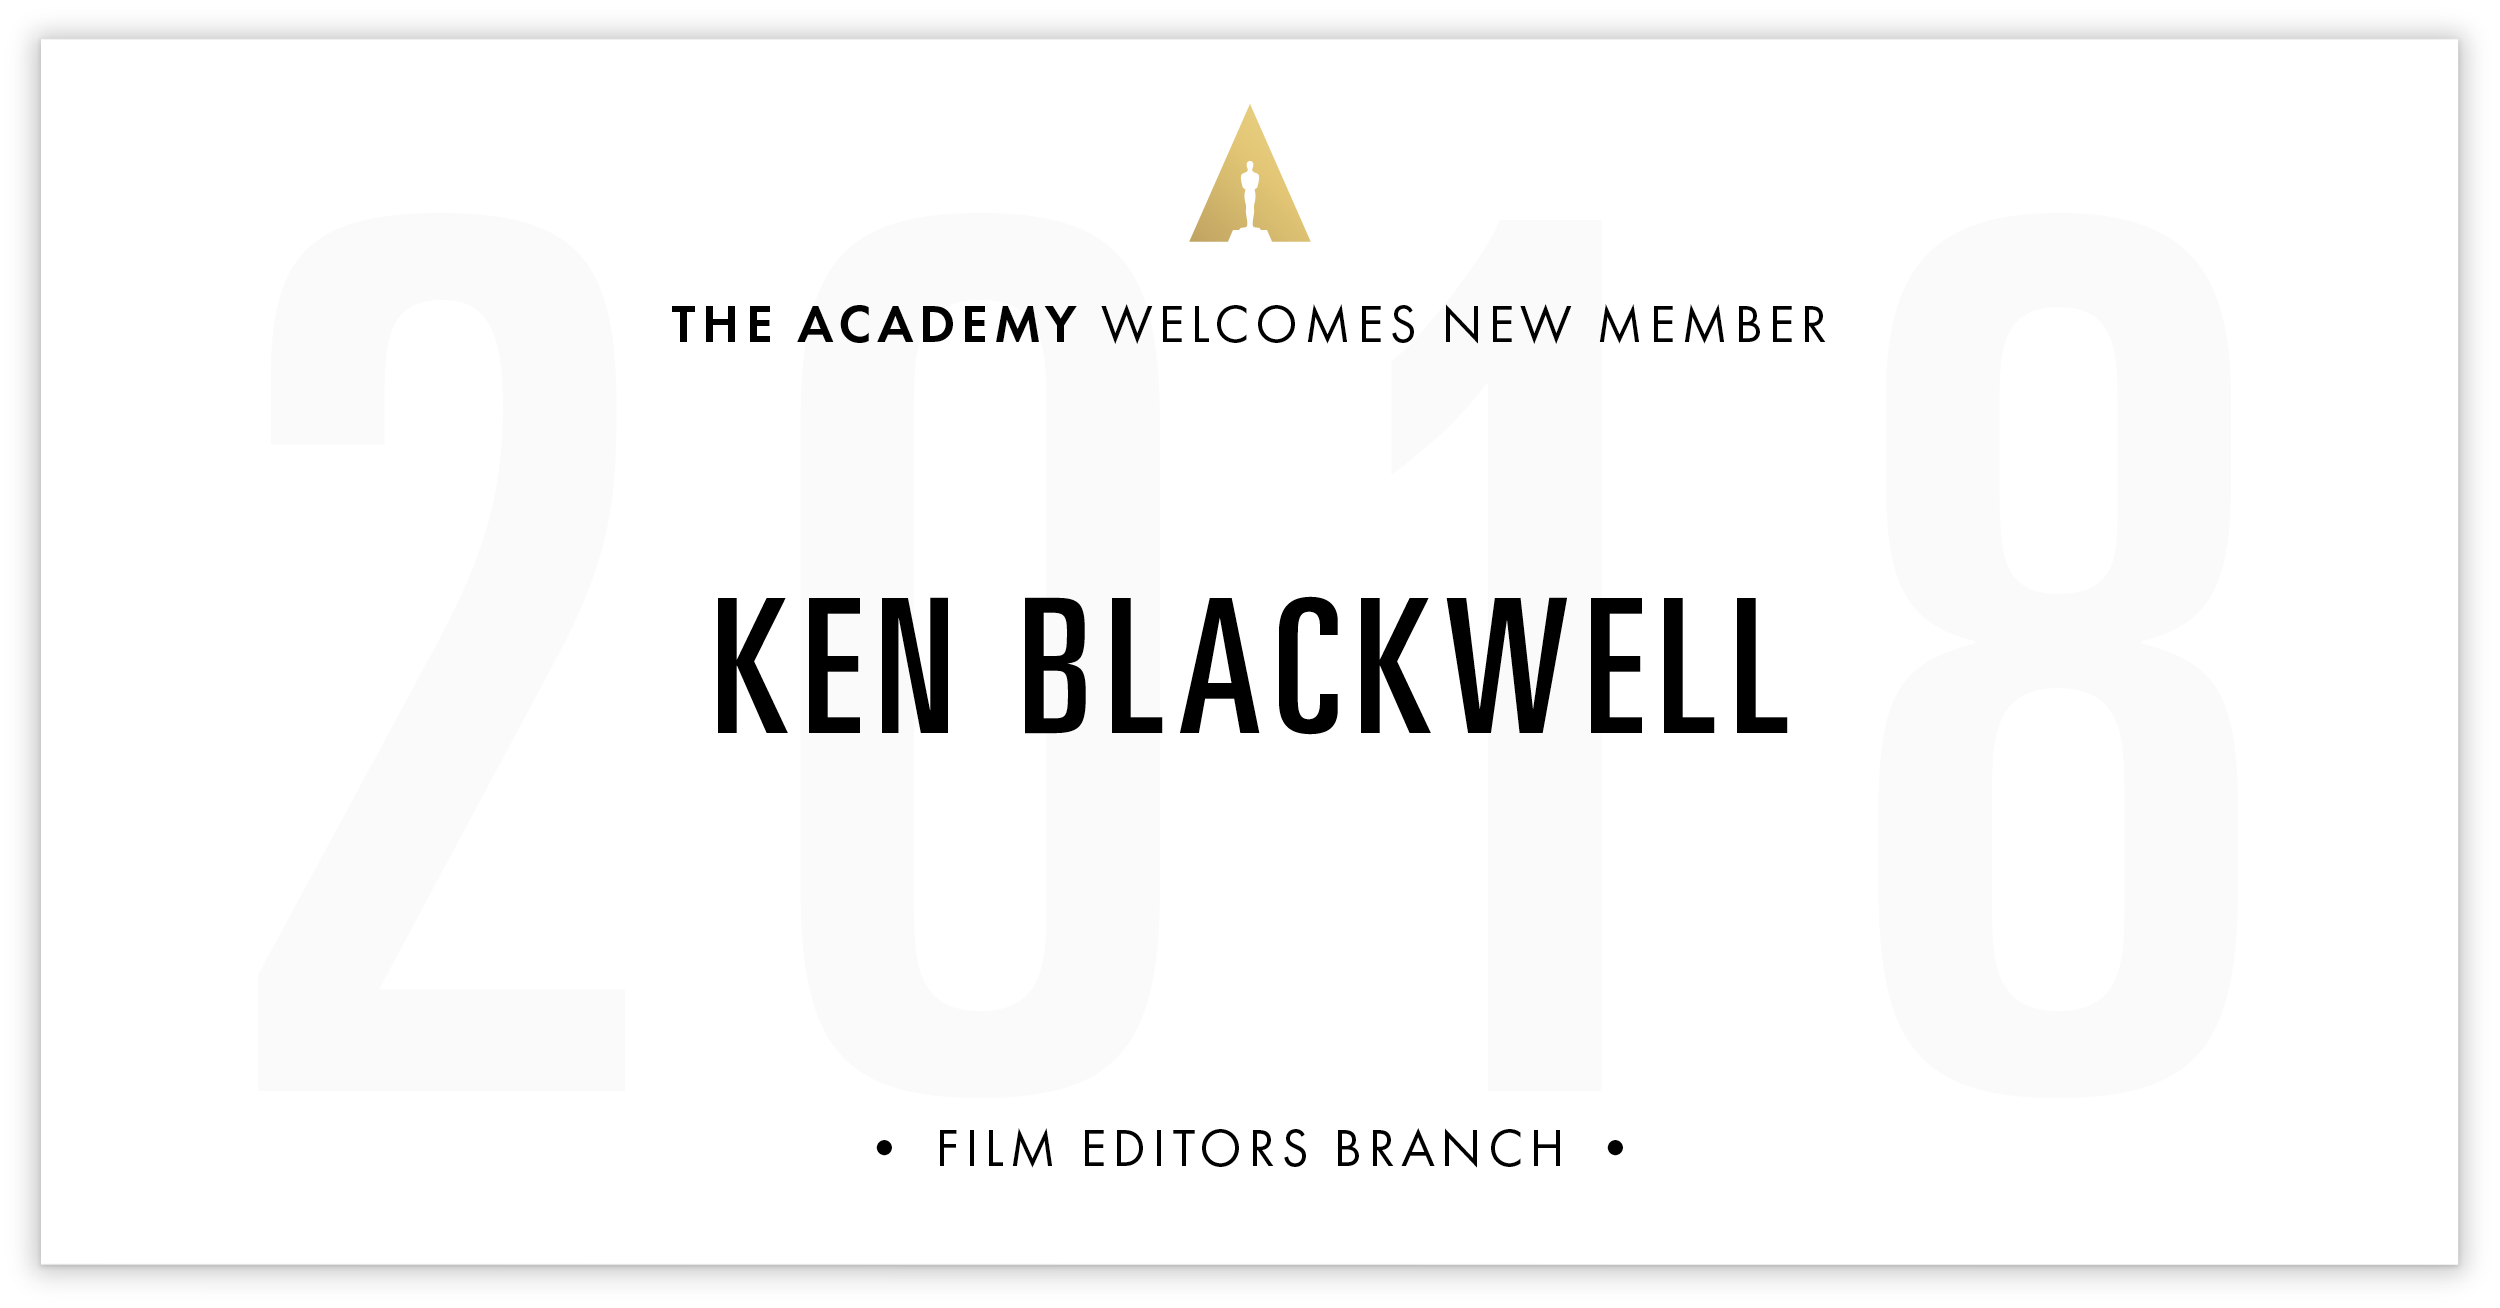 Ken Blackwell is invited!